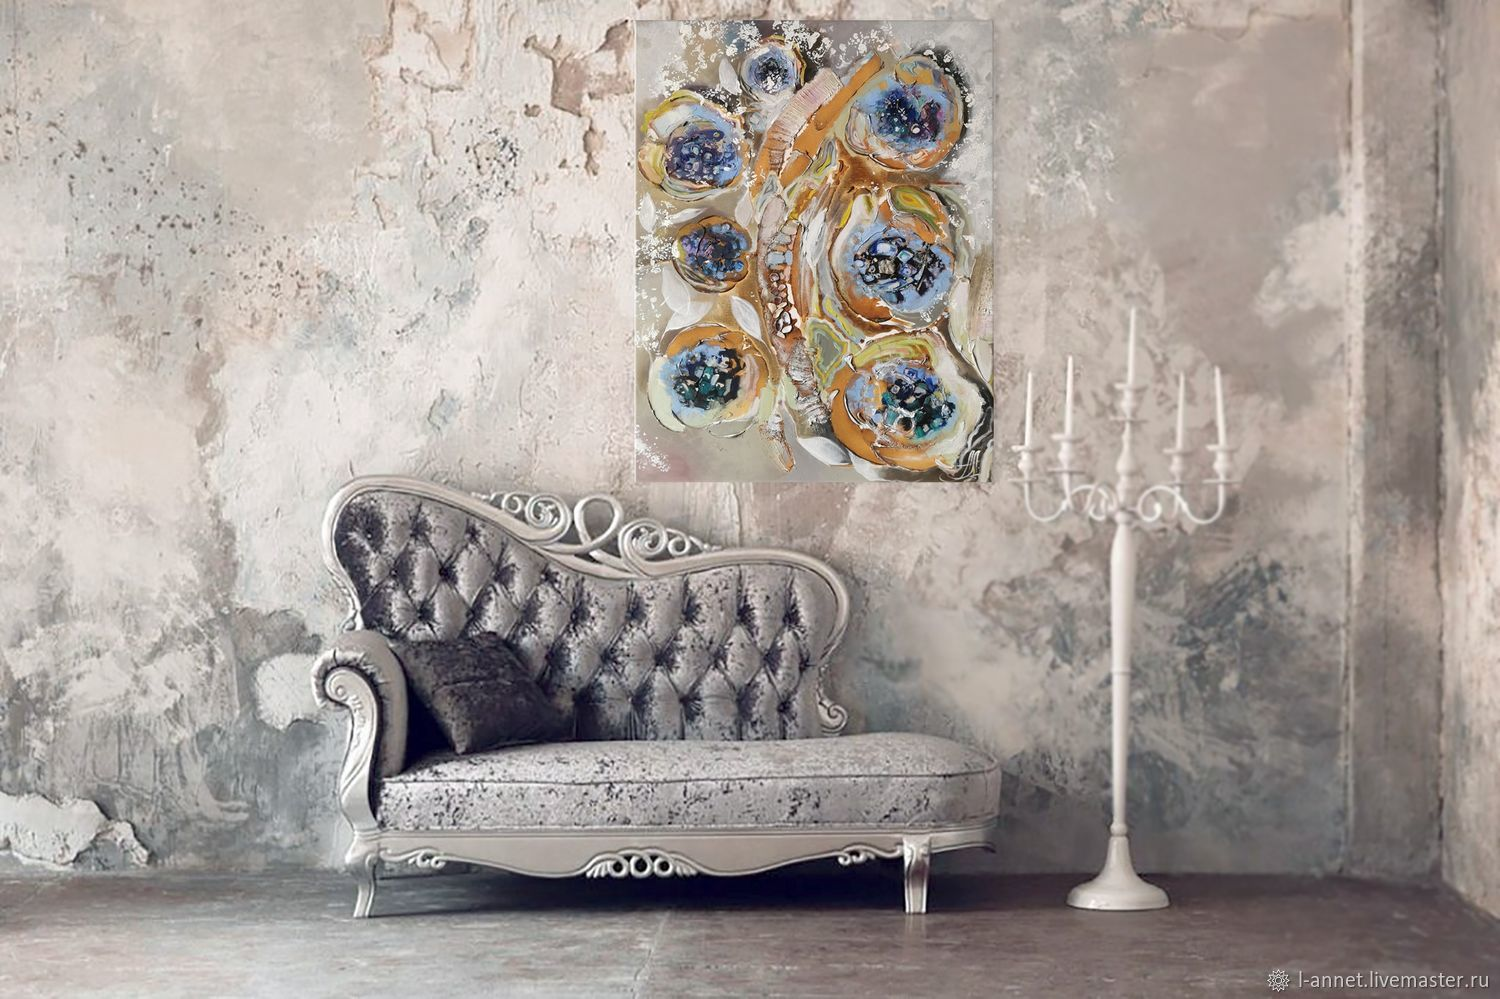 Texture painting - interior painting on canvas, Pictures, Moscow,  Фото №1